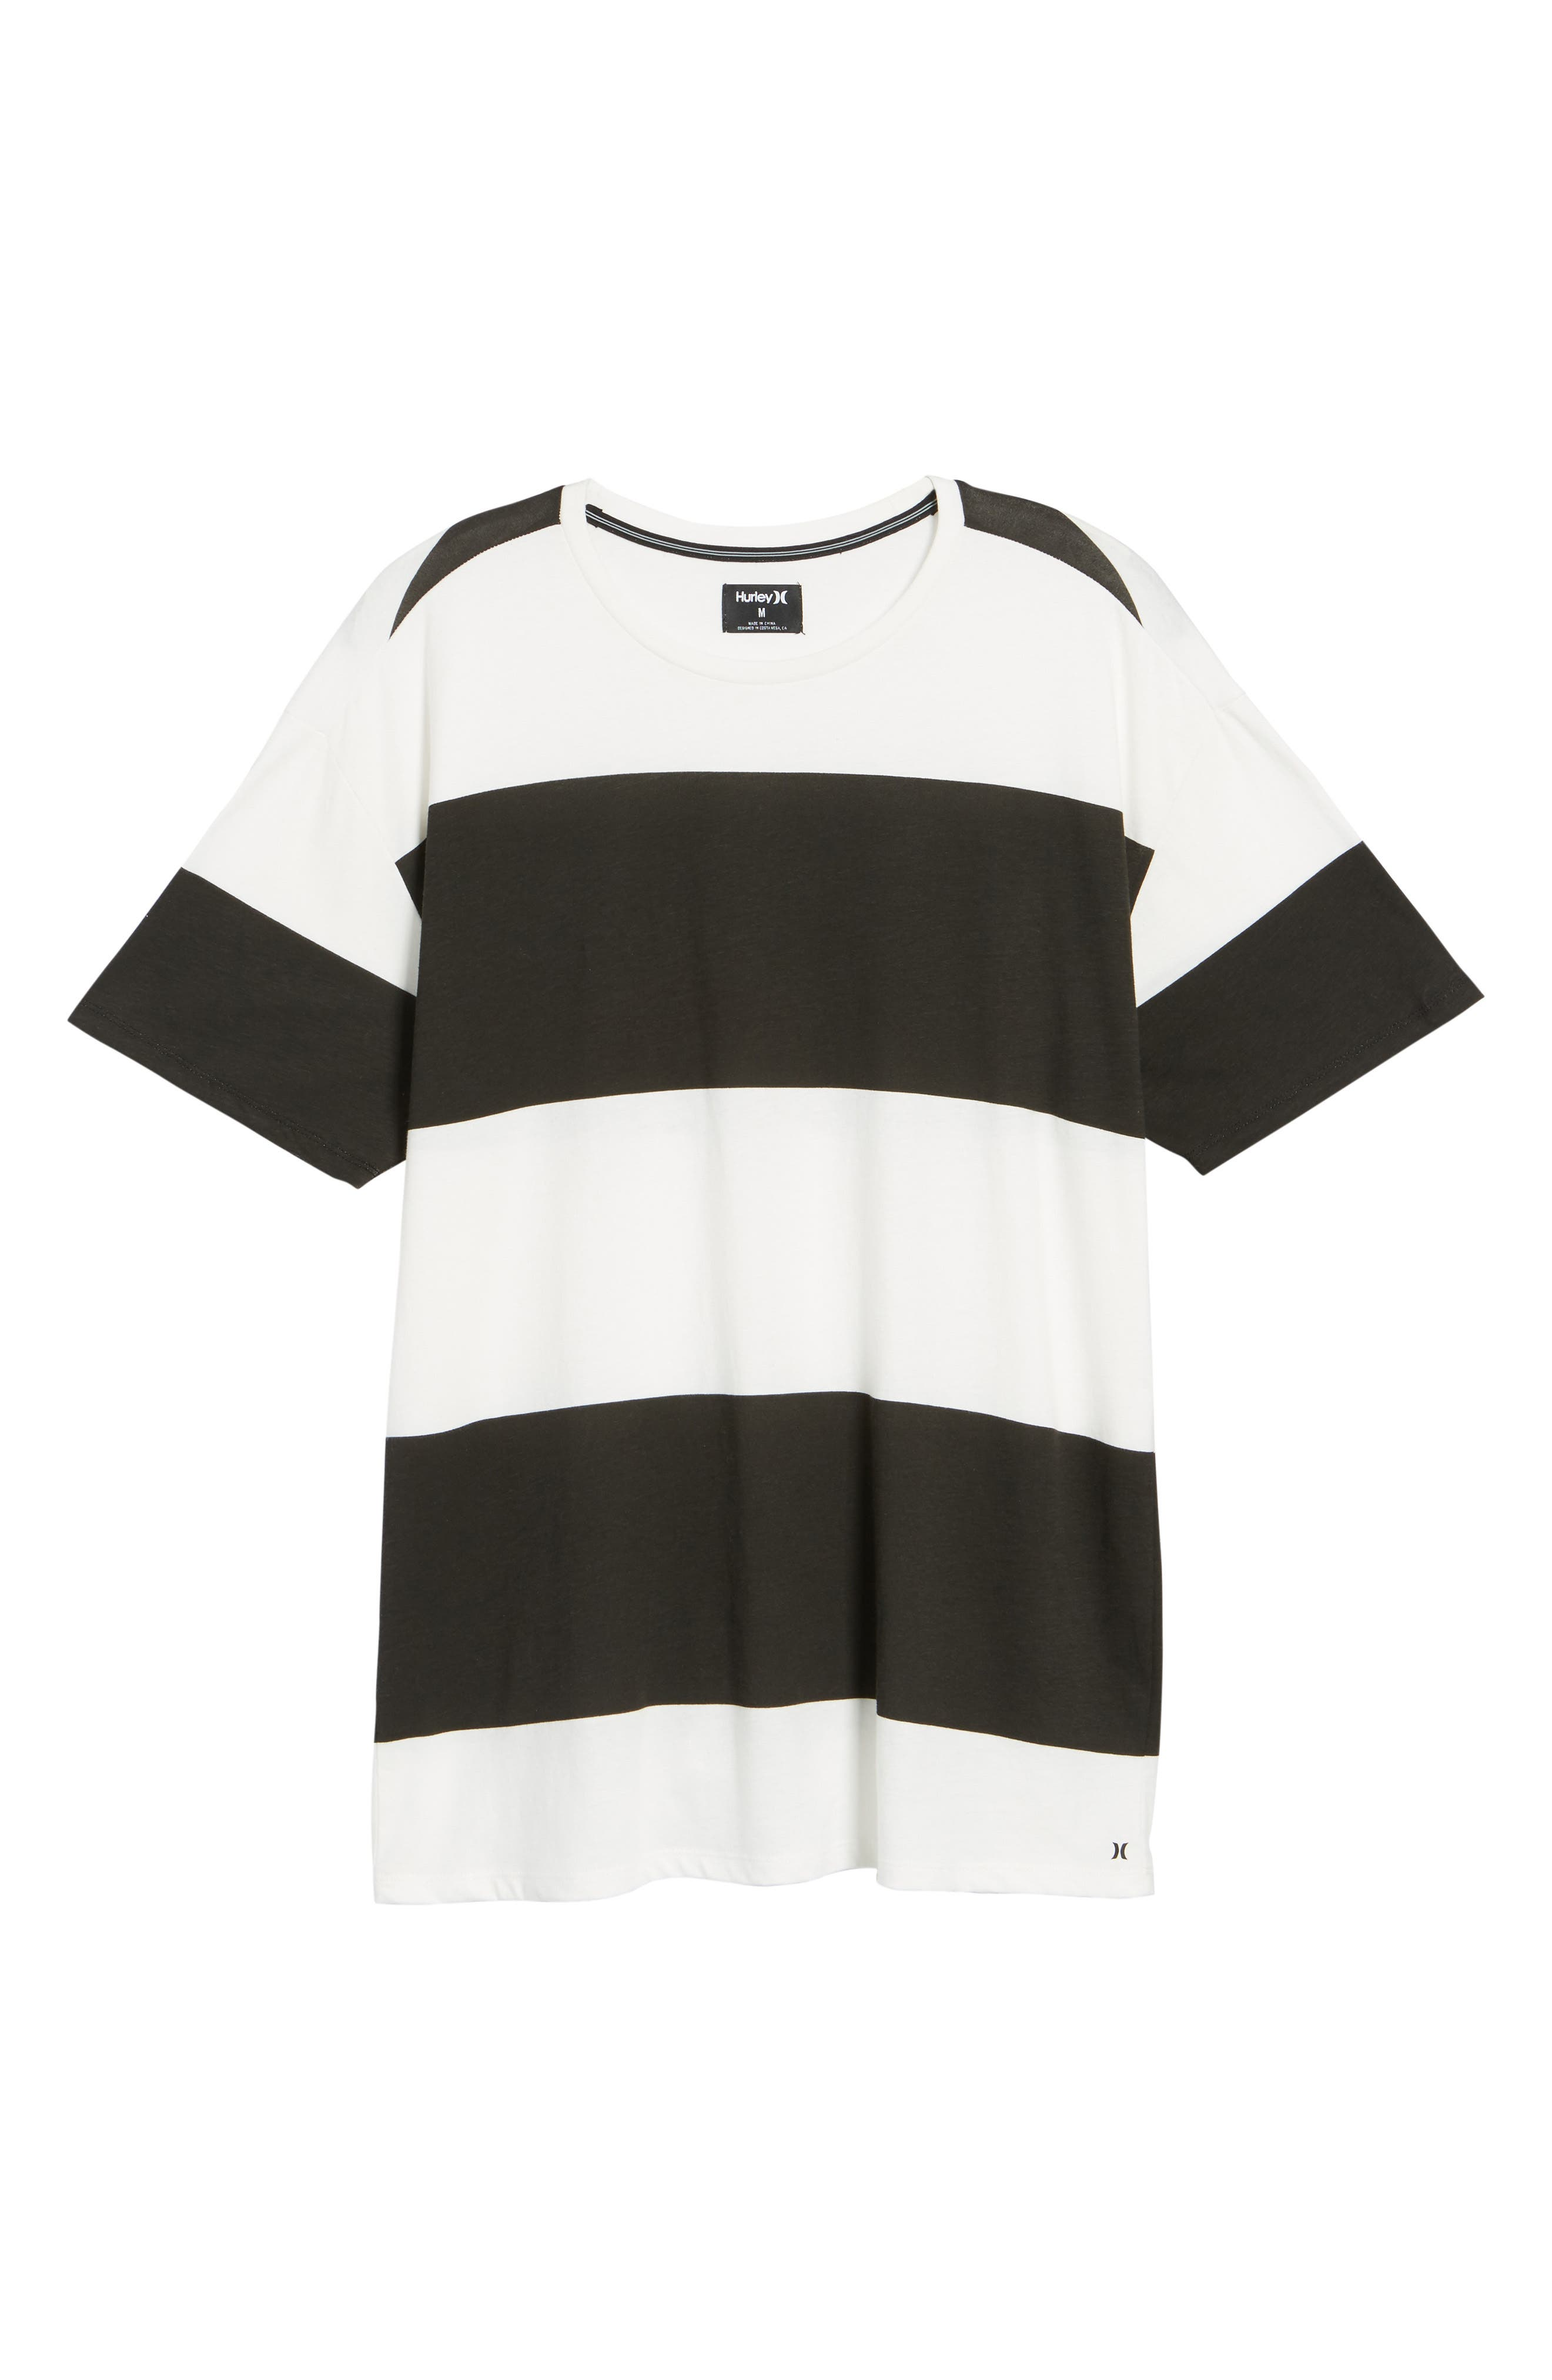 Rugby T-Shirt,                             Alternate thumbnail 6, color,                             133